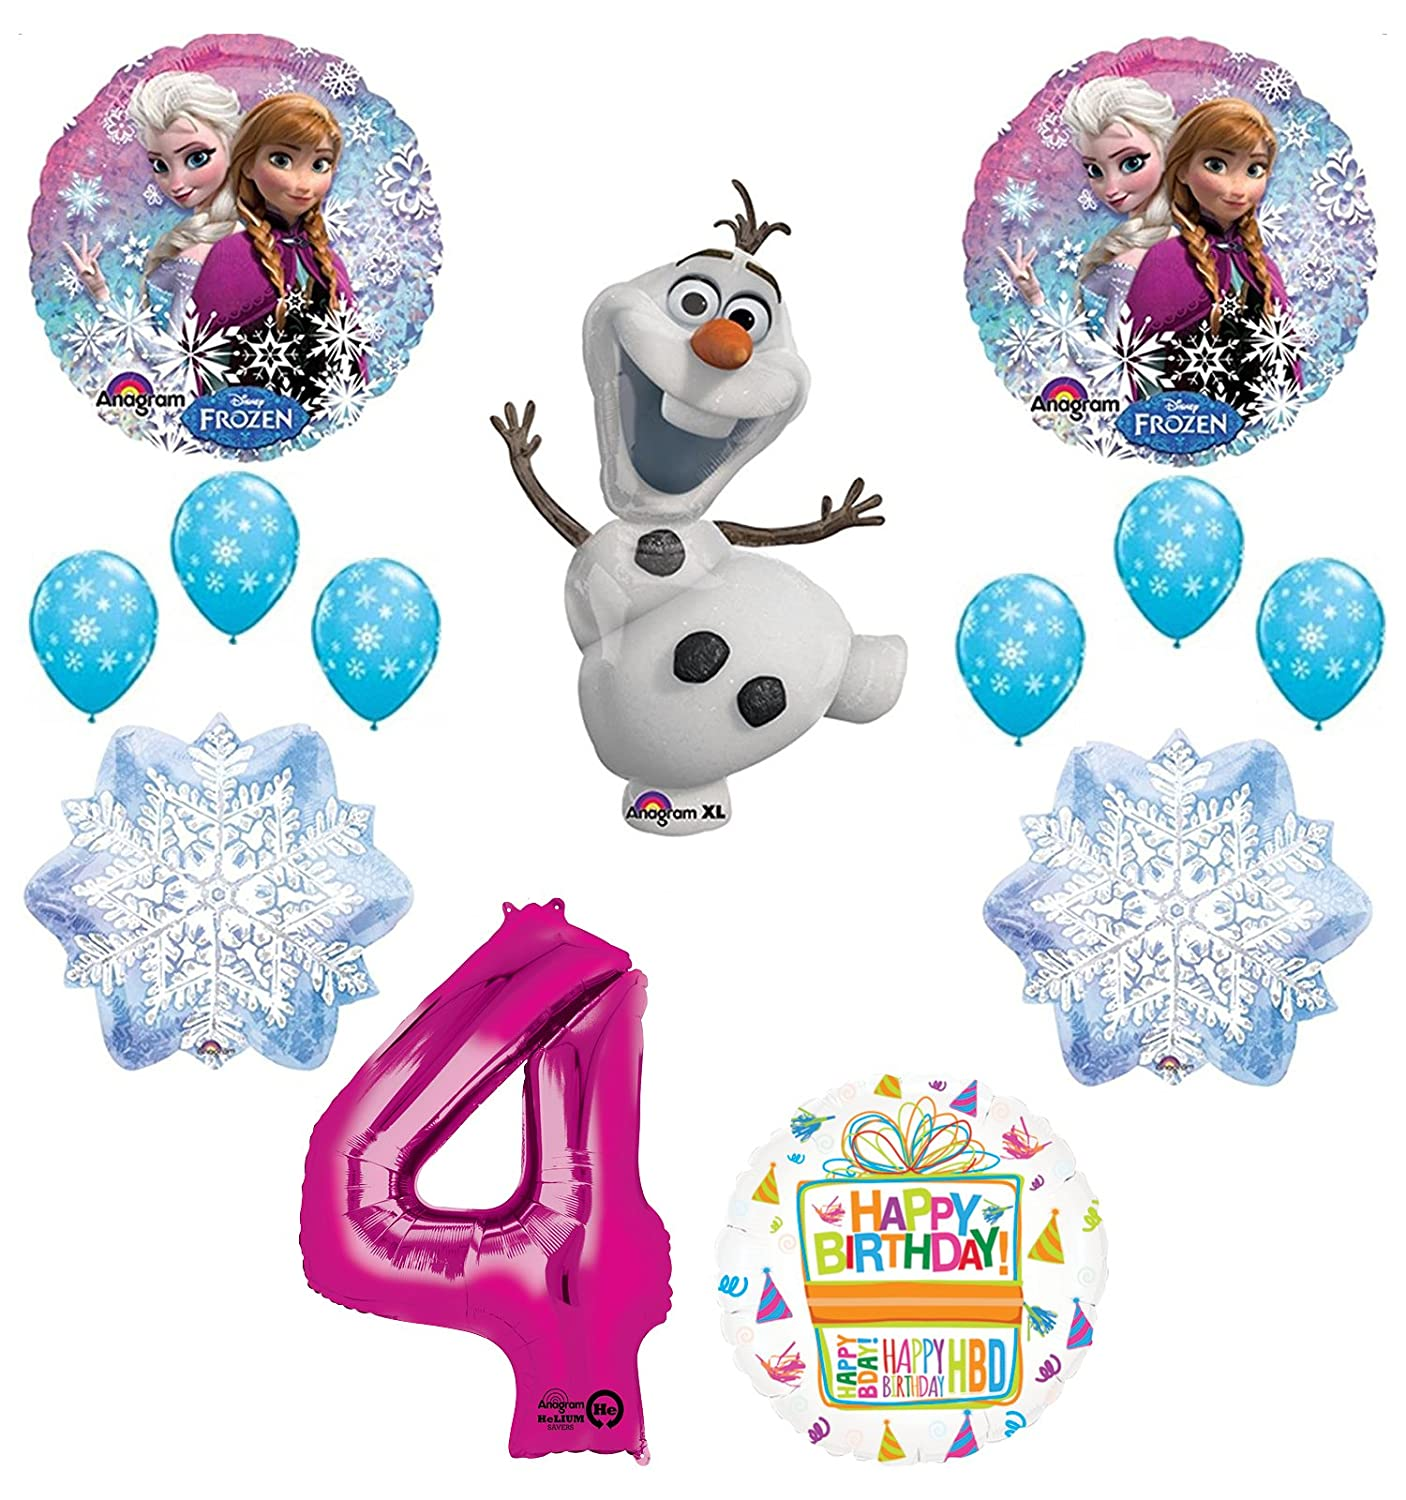 Amazon Frozen 4th Birthday Party Supplies Olaf Elsa And Anna Balloon Bouquet Decorations Pink 4 Toys Games